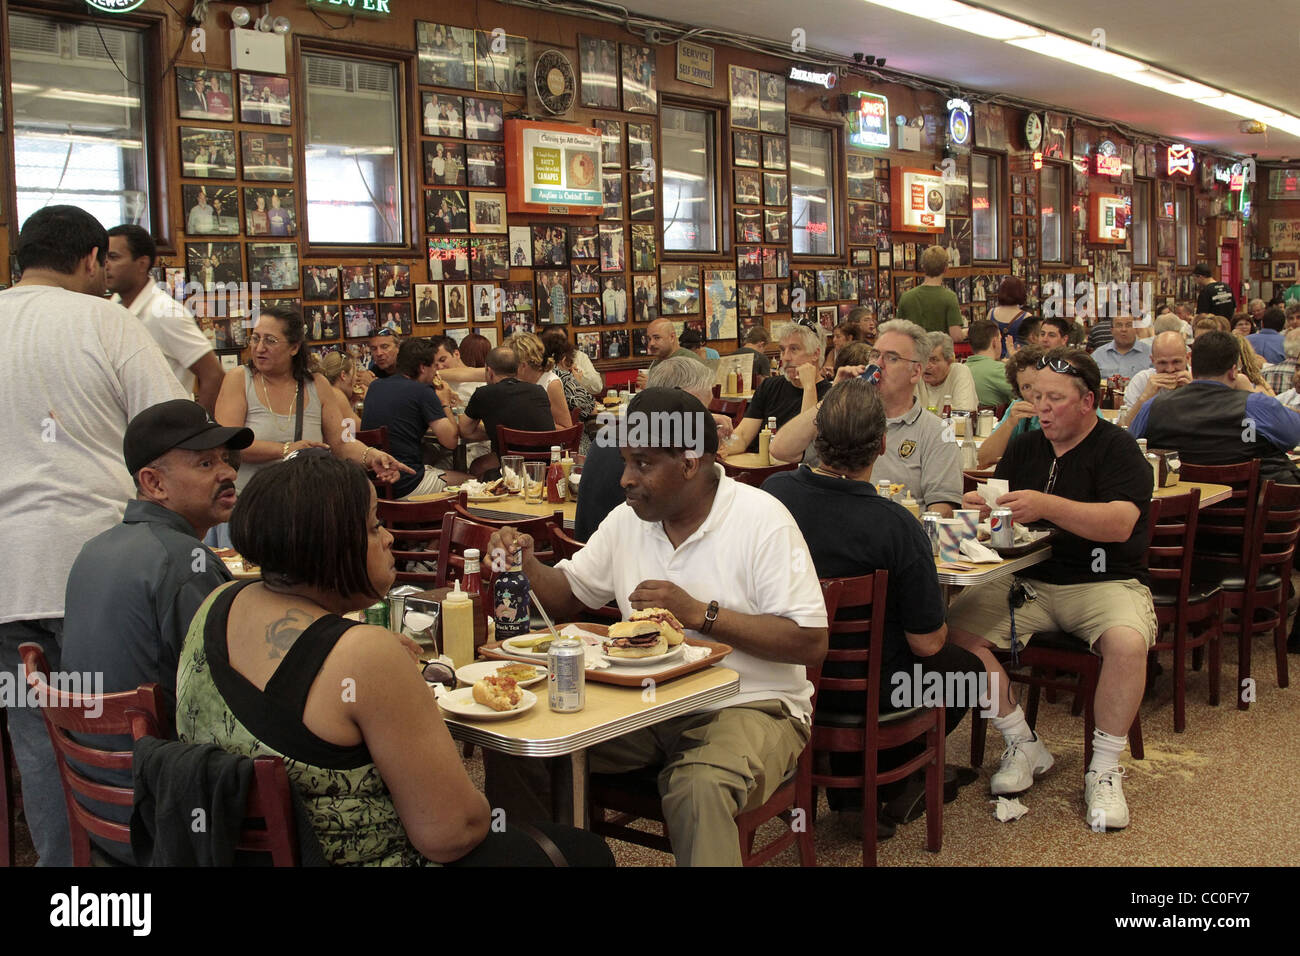 katz's delicatessen, restaurant, manhattan, new york city, new york